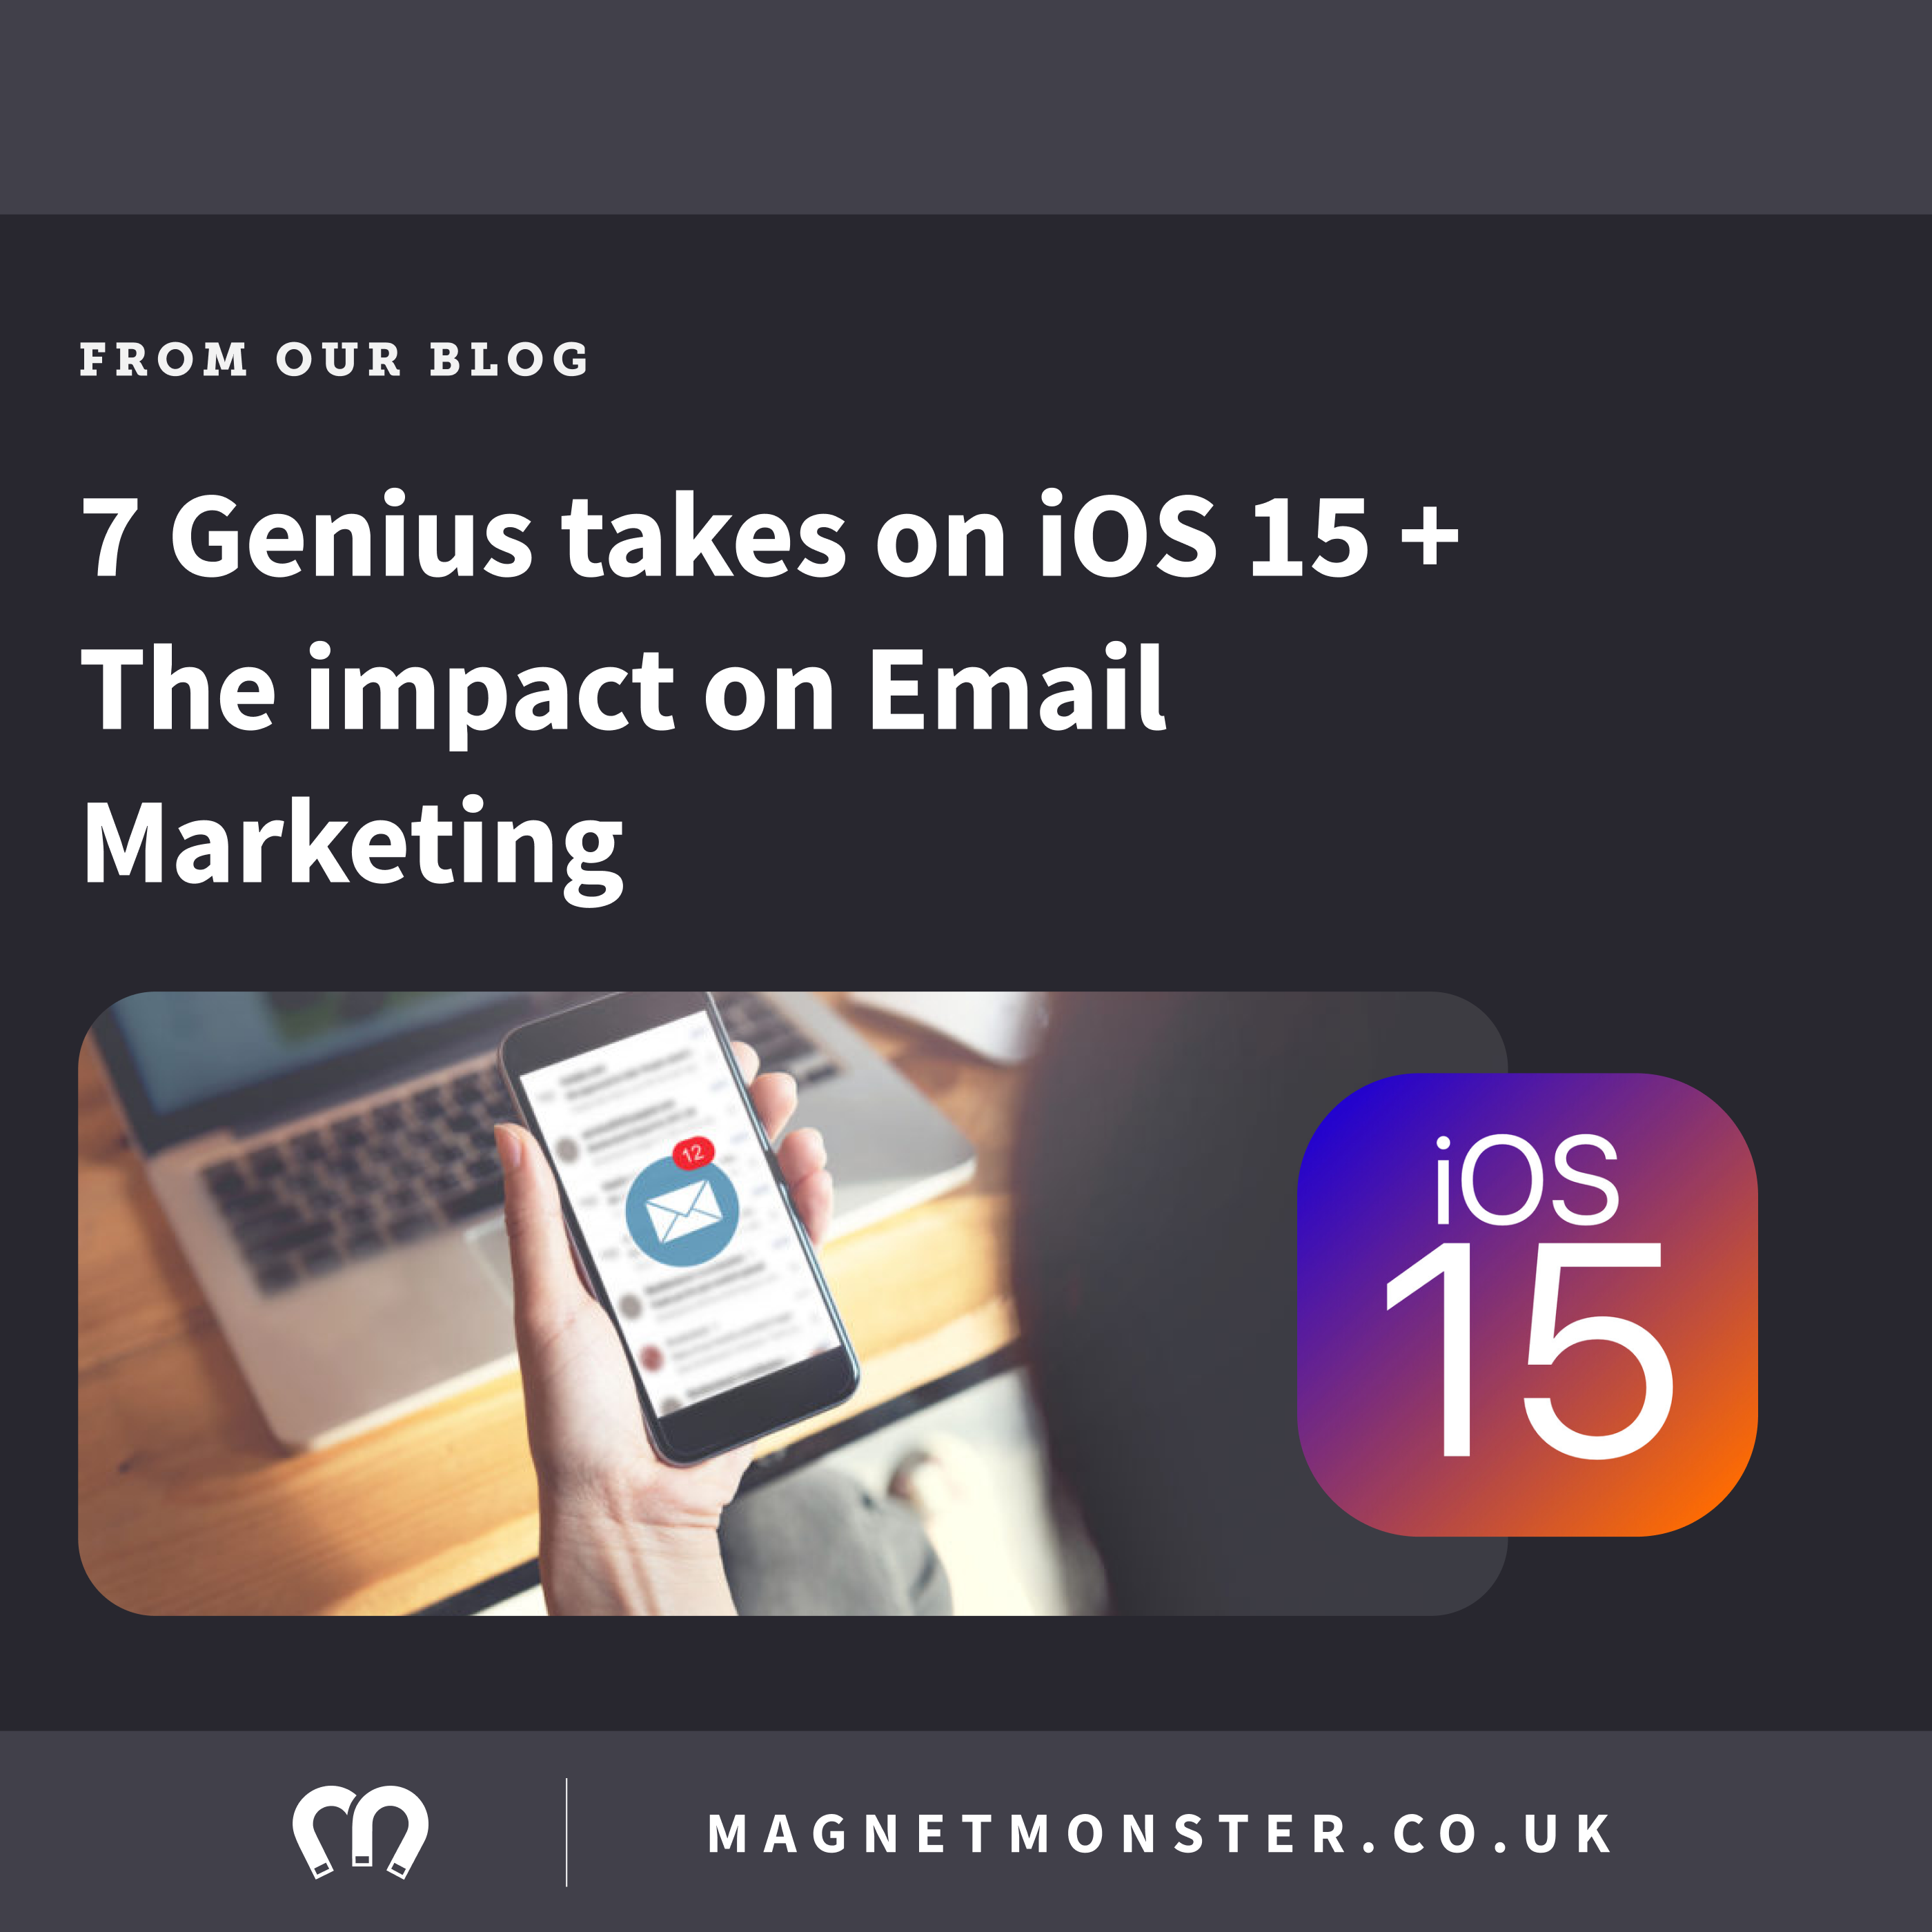 7 Genius takes on iOS 15 + The impact on Email Marketing